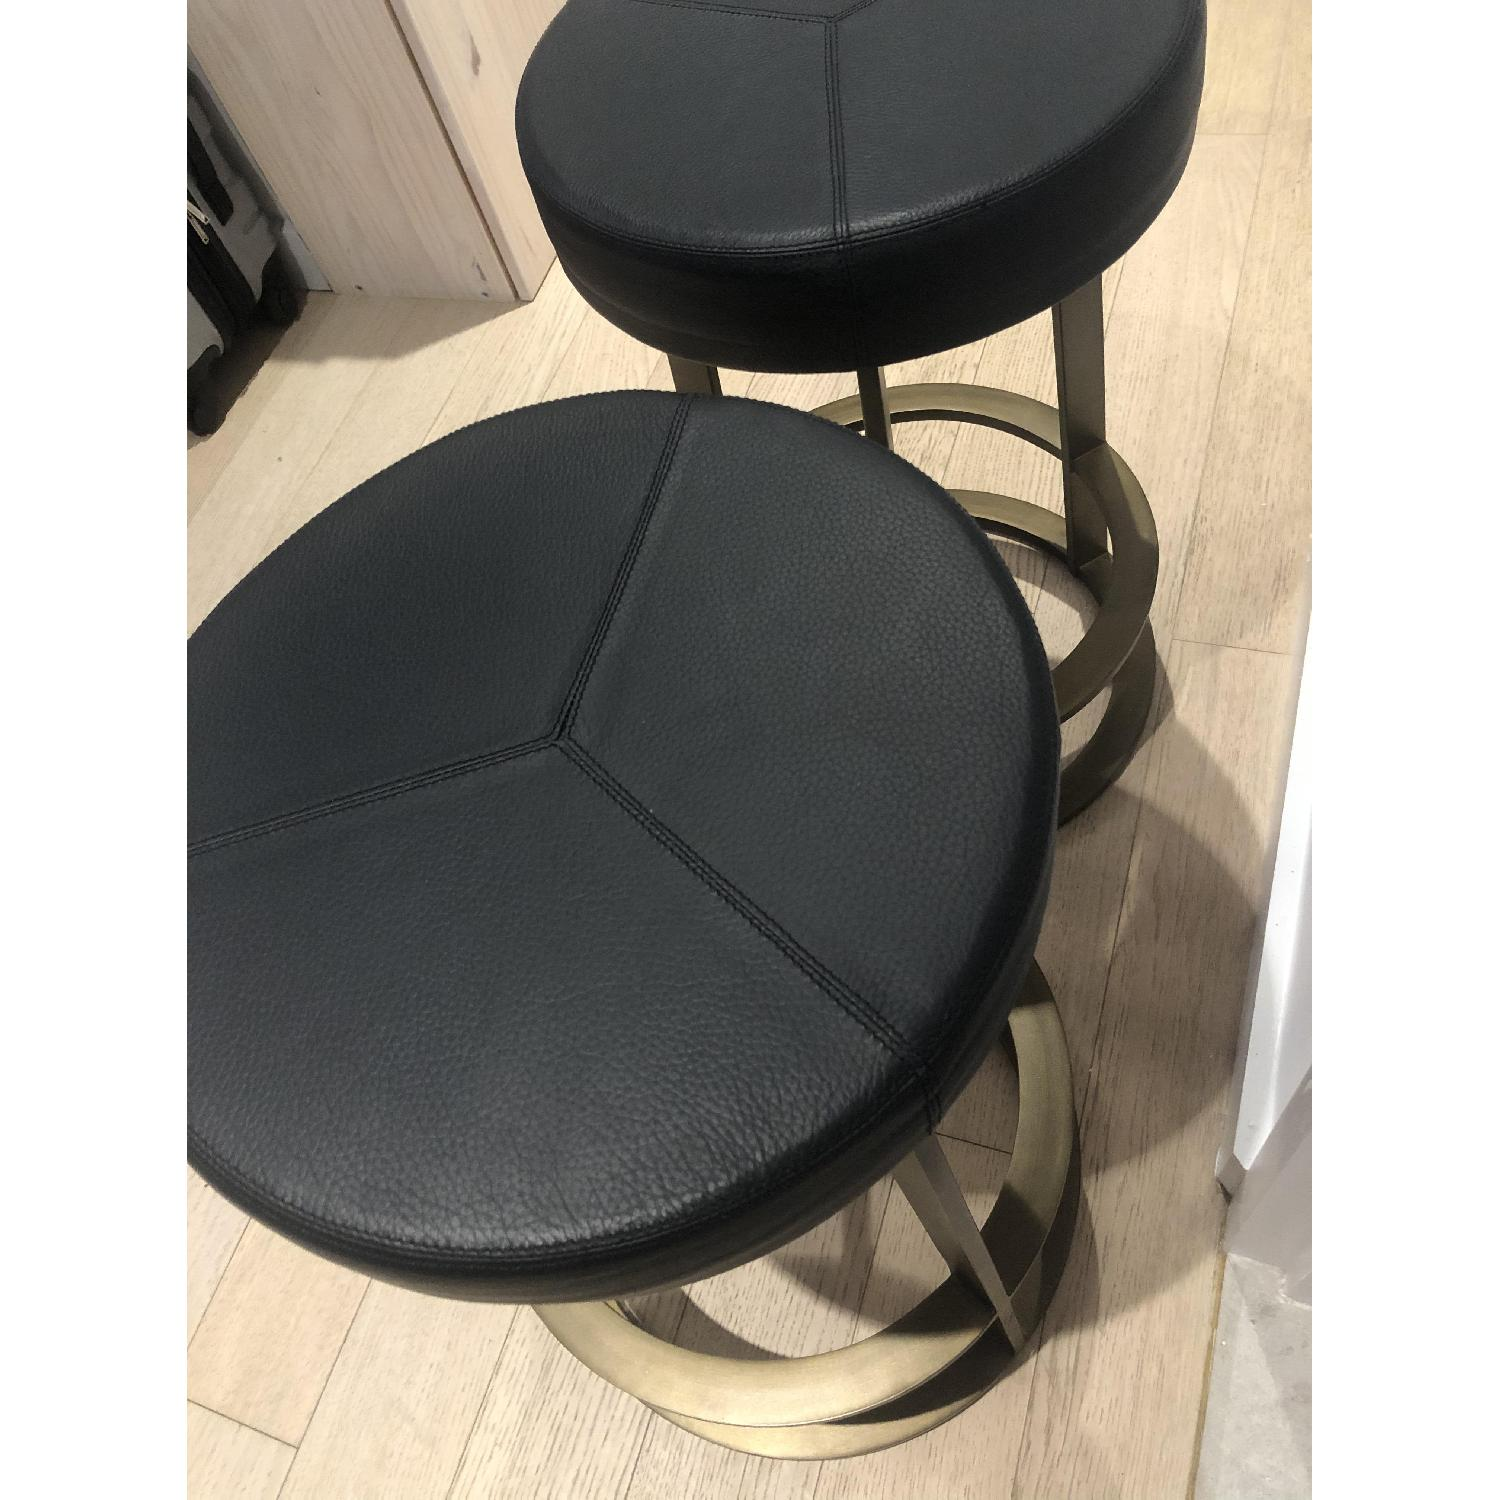 CB2 Leather Reverb Stools - image-8